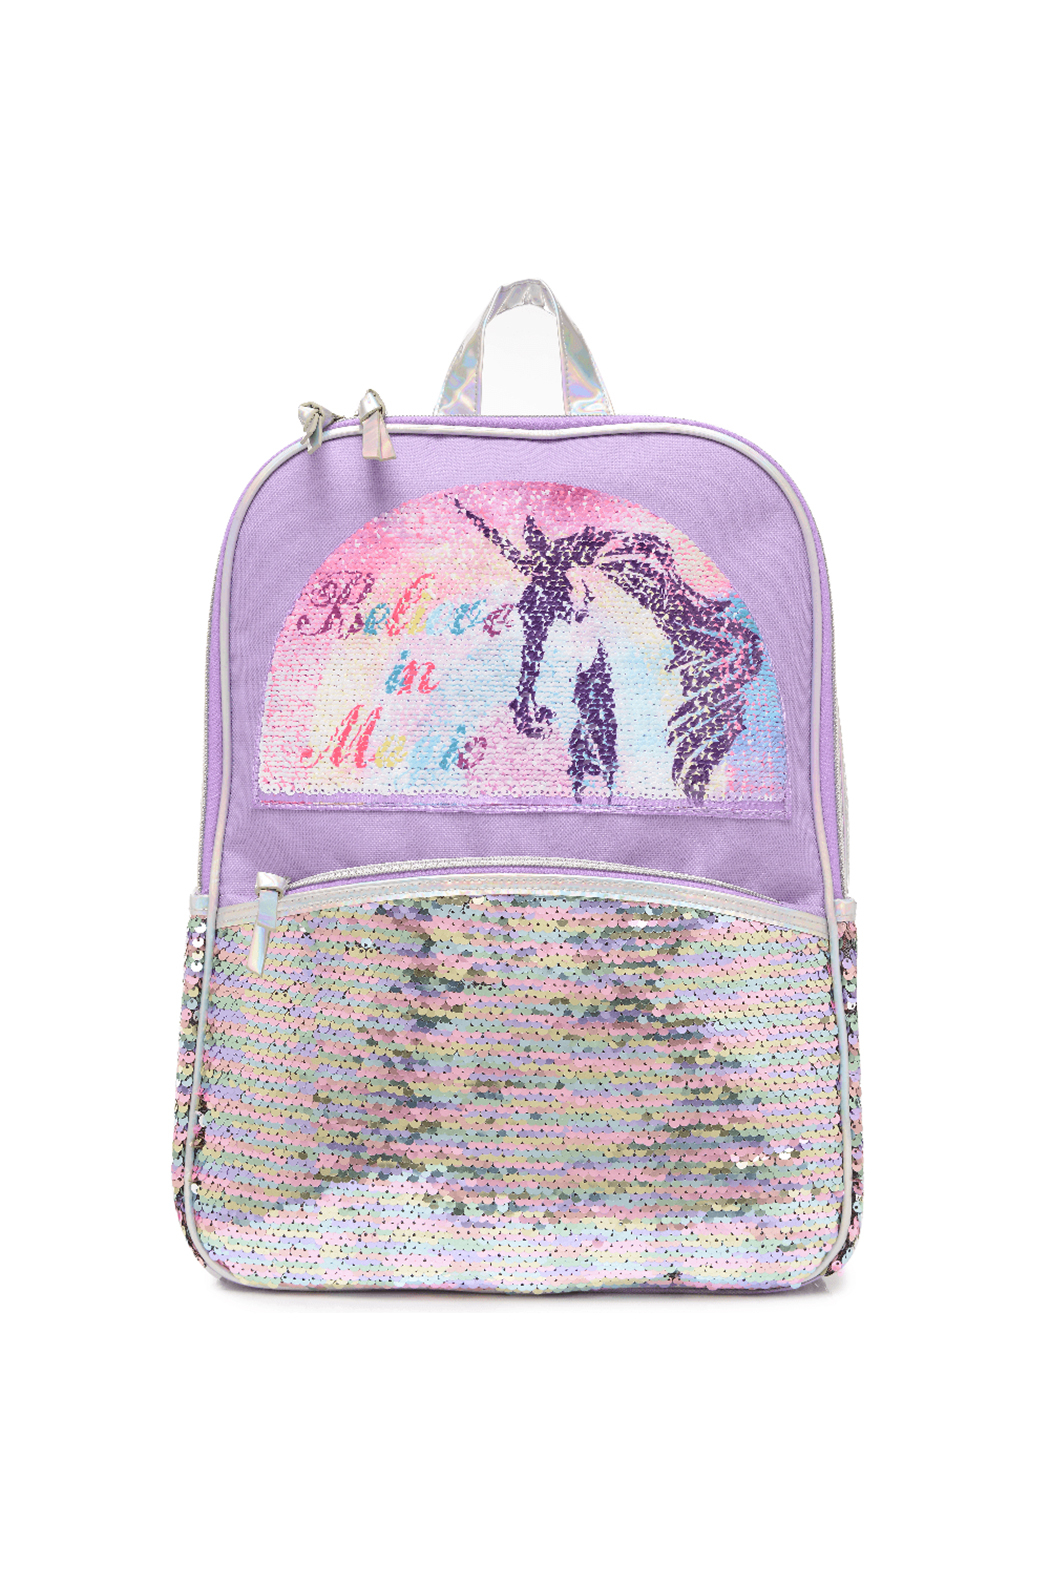 Me Oui Reversible Sequins Unicorn Backpack - Front Full Image